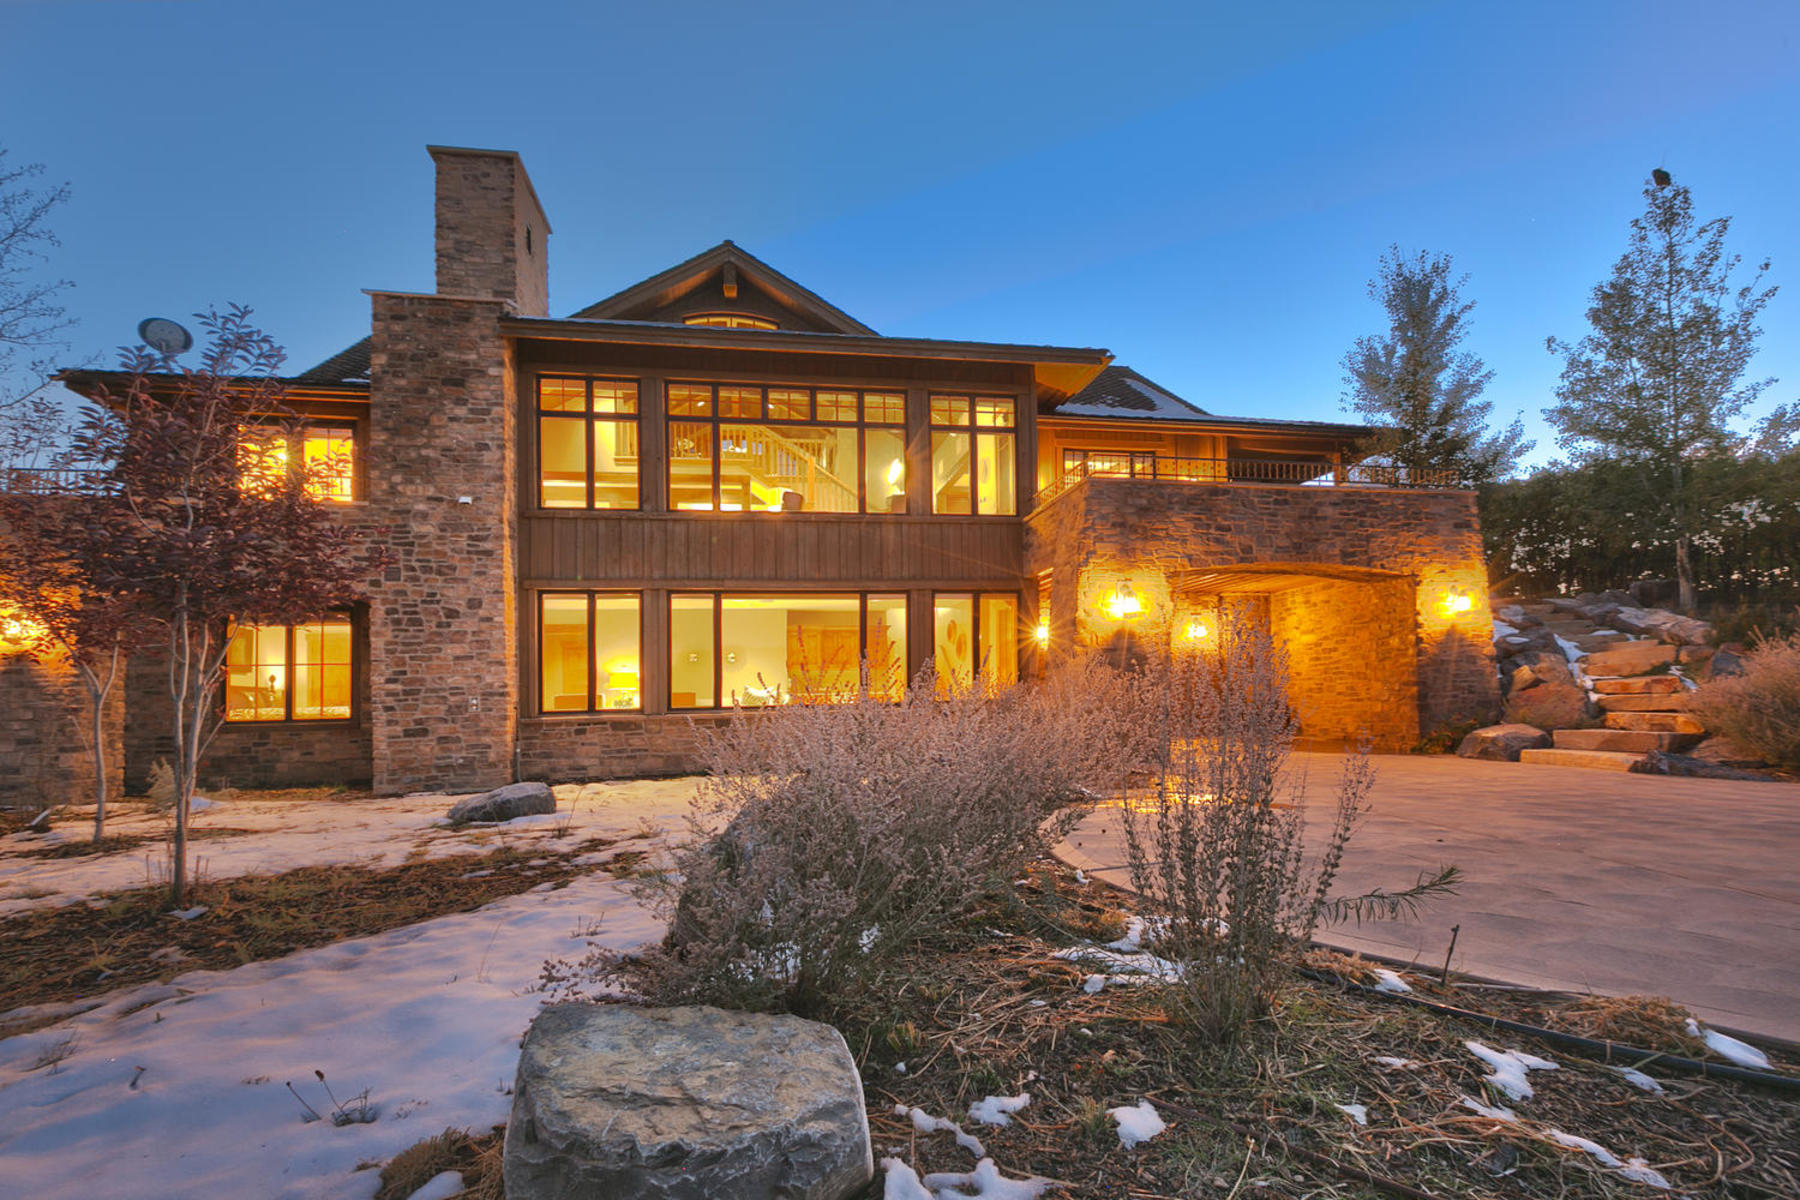 Single Family Home for Sale at Fabulous Golf Club Cabin in Promontory 8584 Ranch Club Ct Park City, Utah 84098 United States